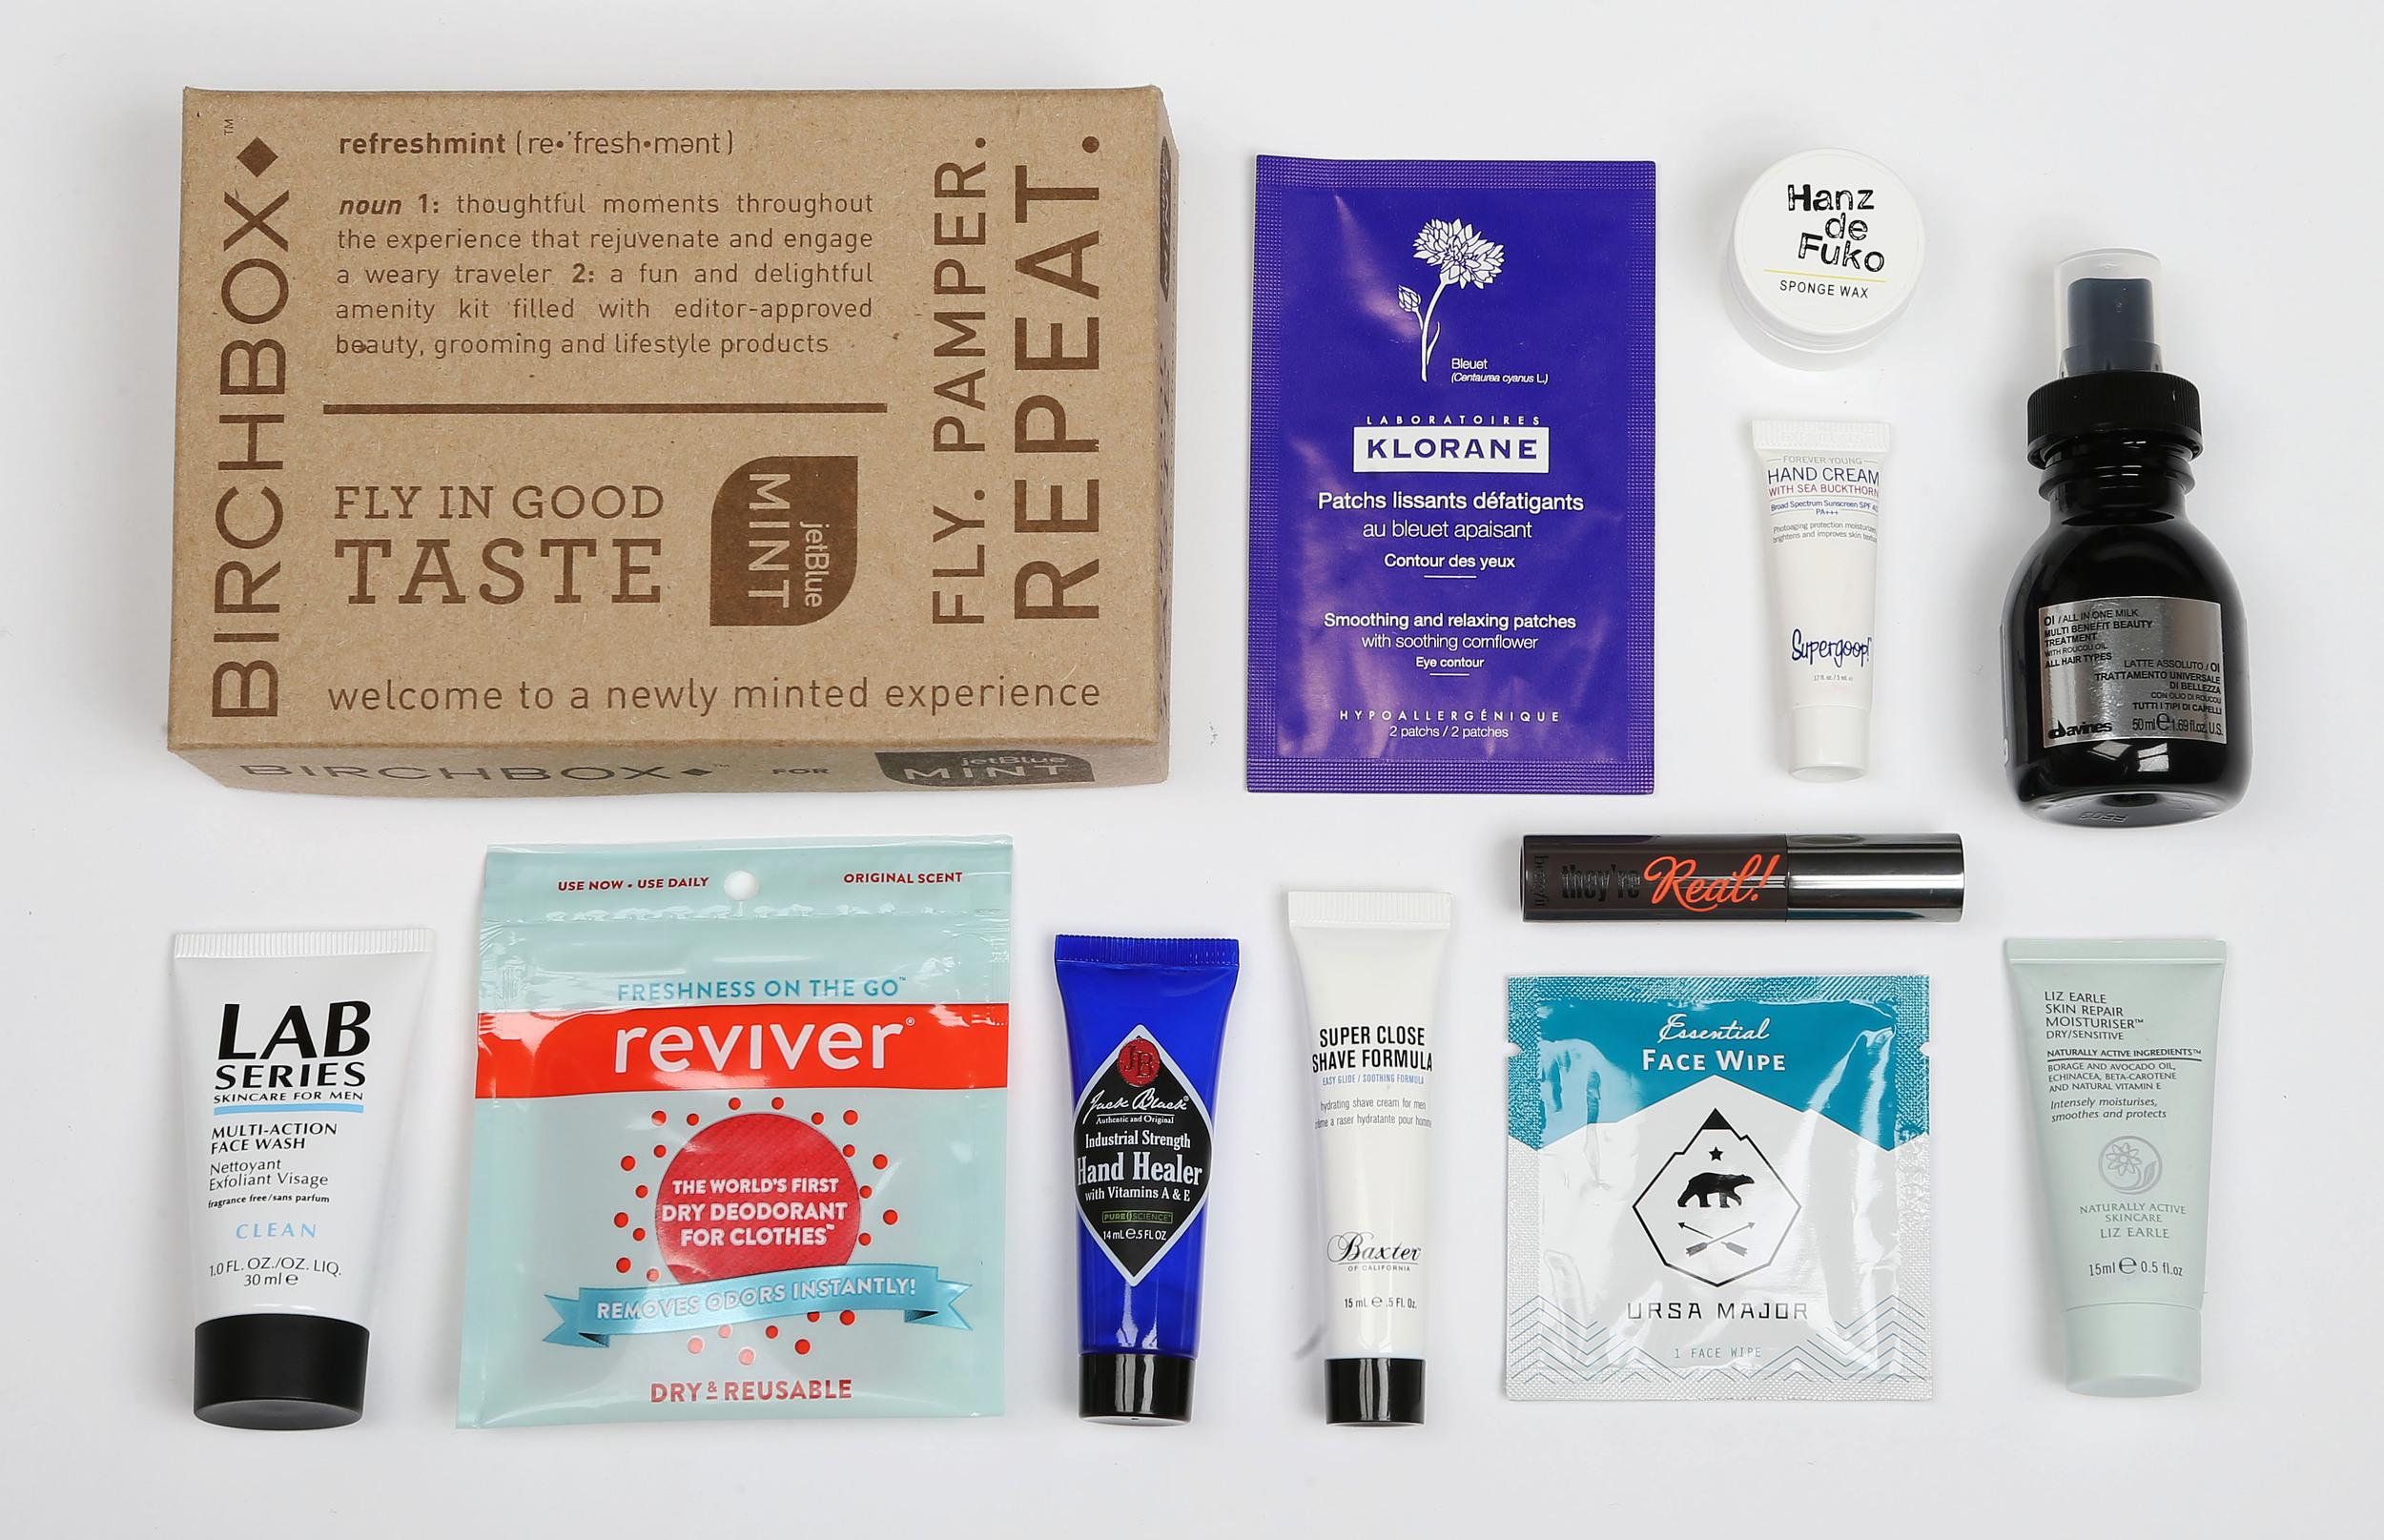 """<p><strong>What do you get?</strong> The great thing about JetBlue's Birchbox in-flight kit is that it bypasses the tooth brush + eye mask + shoe horn formula of other airlines. In our sample kit – a sturdy cardboard box branded JetBlue and Birchbox, attractively designed with multiple fonts and a definition of """"refreshmint"""" – there's a green (mint…) drawstring pouch containing a sample of the Birchbox products of the season. For men: A sachet of dry deodorant for clothes, Hanz de Fuko sponge wax, Hand Healer lotion, LAB Series multi-action face wash, Tube of Super Close Shave Formula, Ursa Major ambidextrous face wipe<br /> For women: Benefit mascara, Hand cream with sea buckthorn by Supergoop, Liz Earle Skin Repair Moisturiser<br /> Avines all-in-one milk multi-benefit beauty treatment, eye patch, deodorant<br /> <strong>Best bit of the kit?</strong> The ever-changing nature of Birchbox. This month it's Liz Earle, next month who knows which high-end treatment will appear on your low-cost(ish) flight.</p>"""